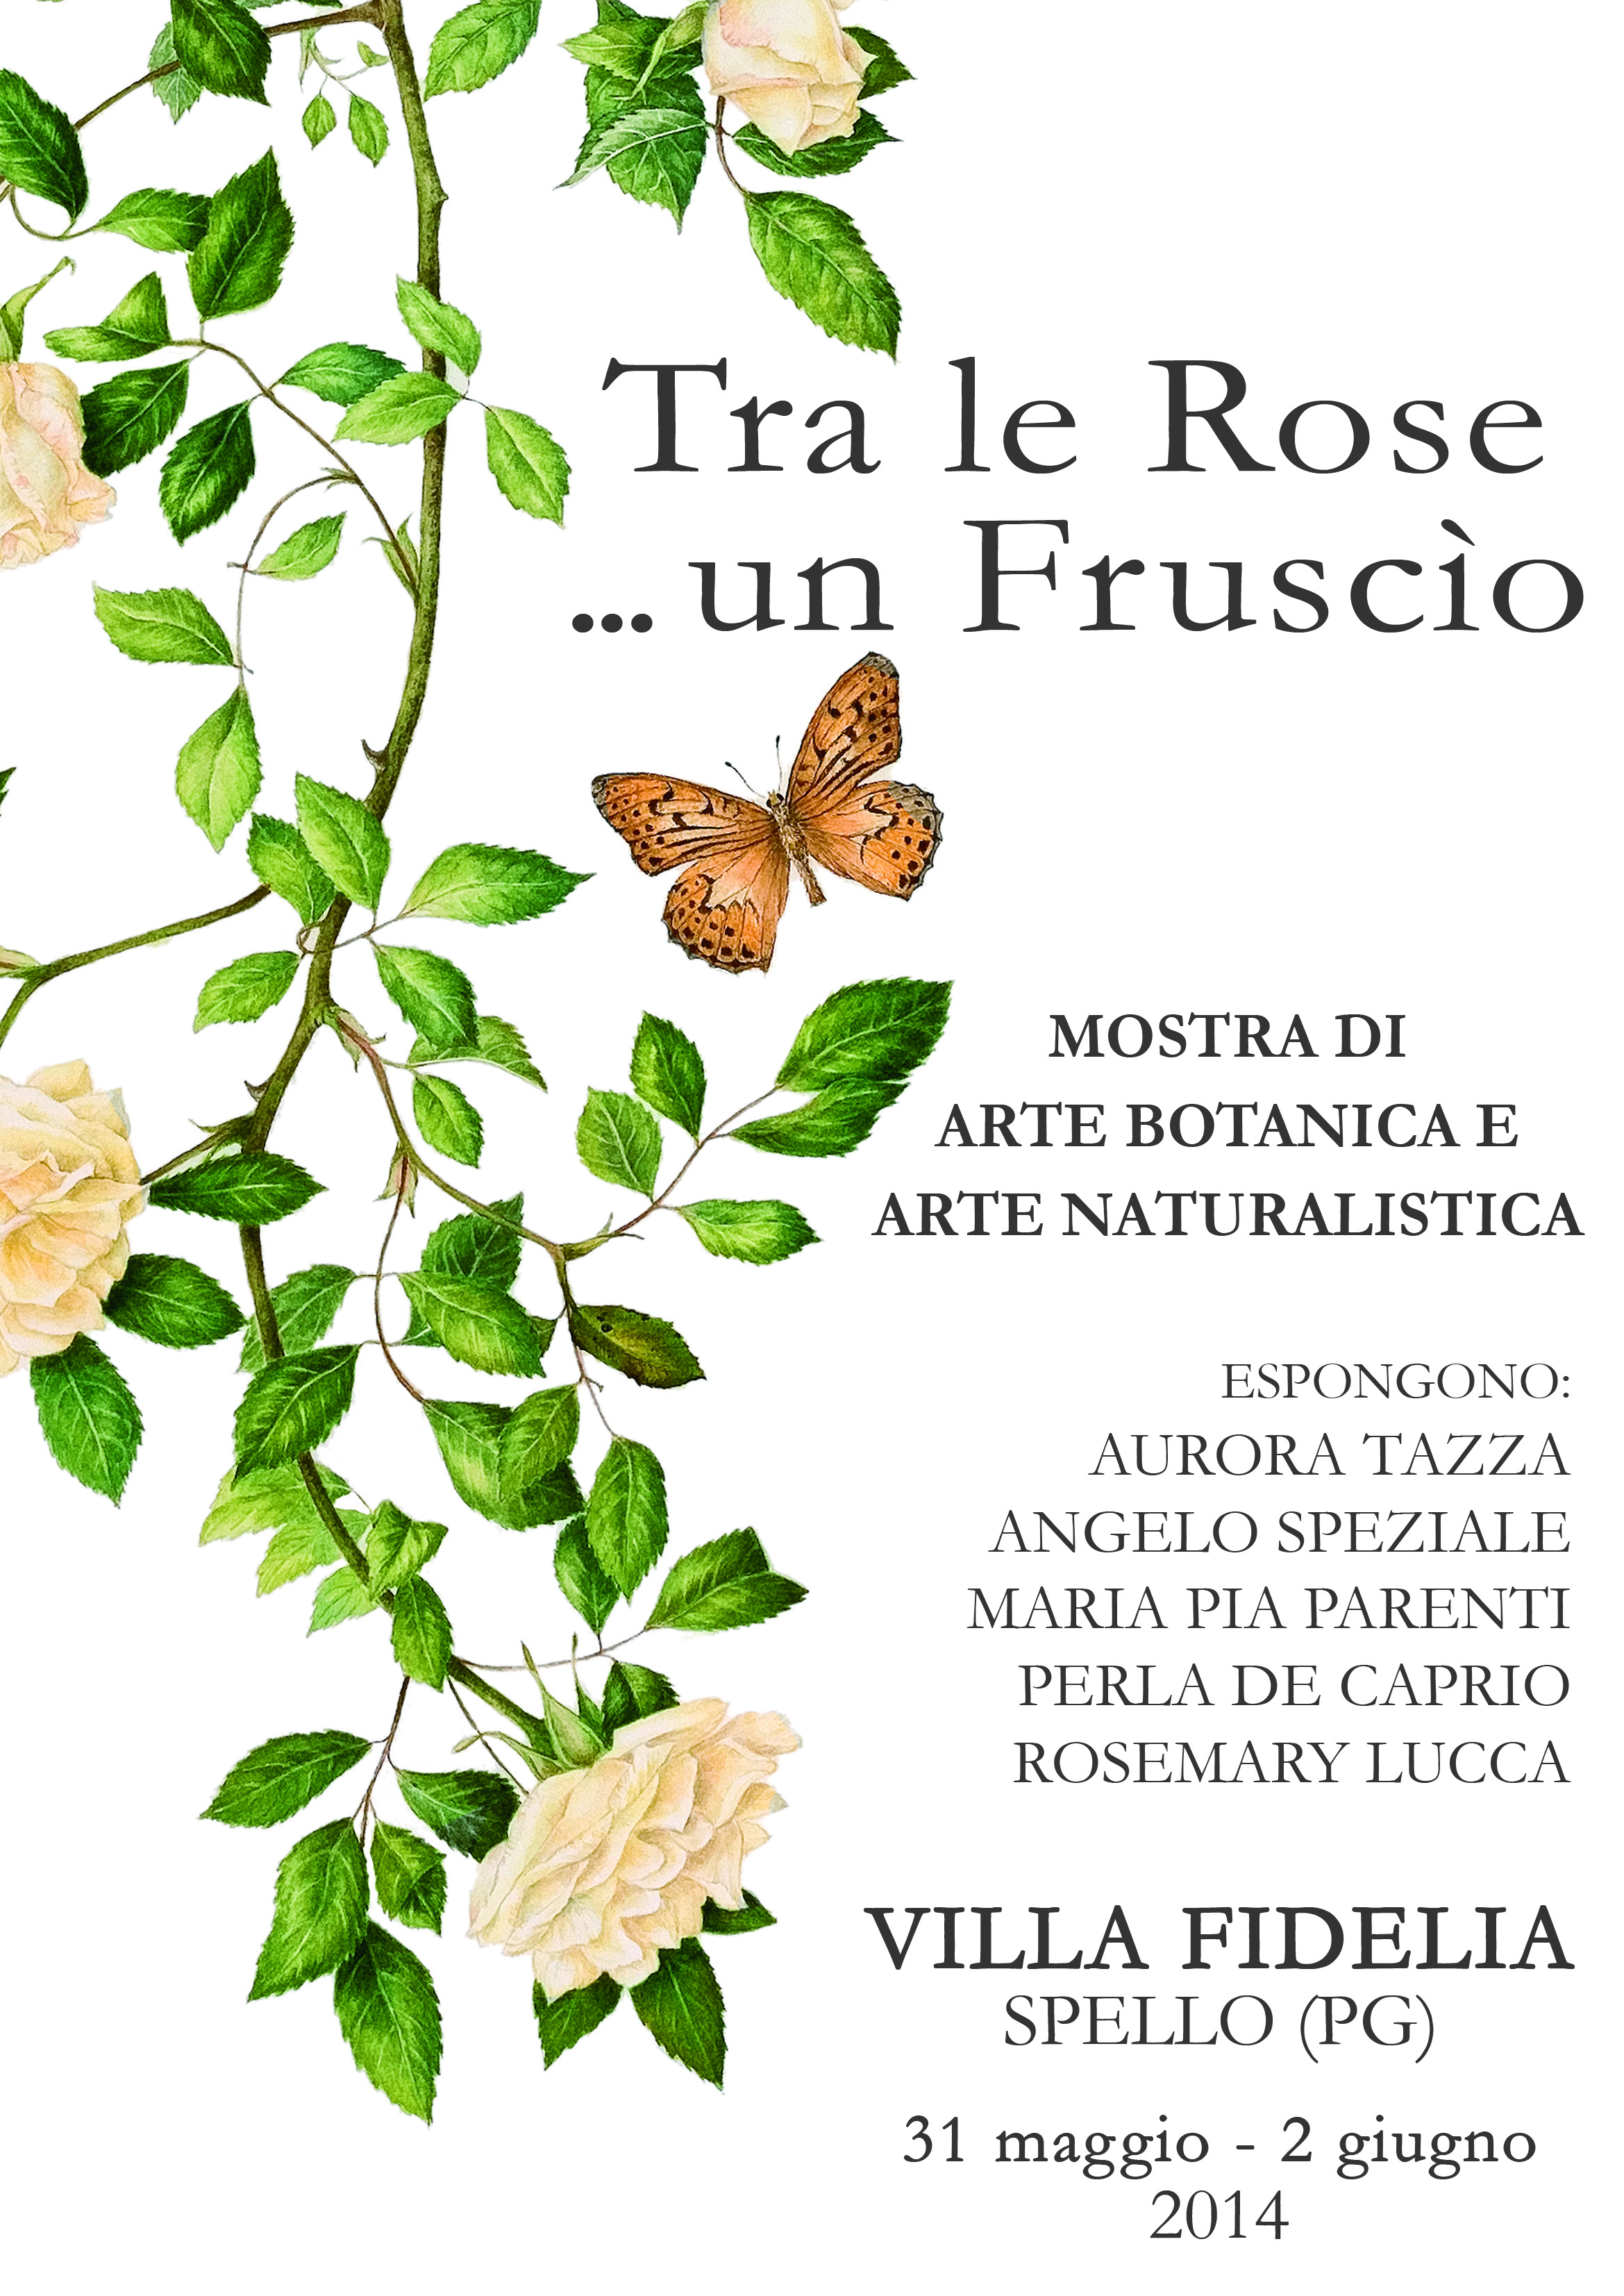 31 May – 2 June 2014, VILLA FIDELIA, Spello, Italy